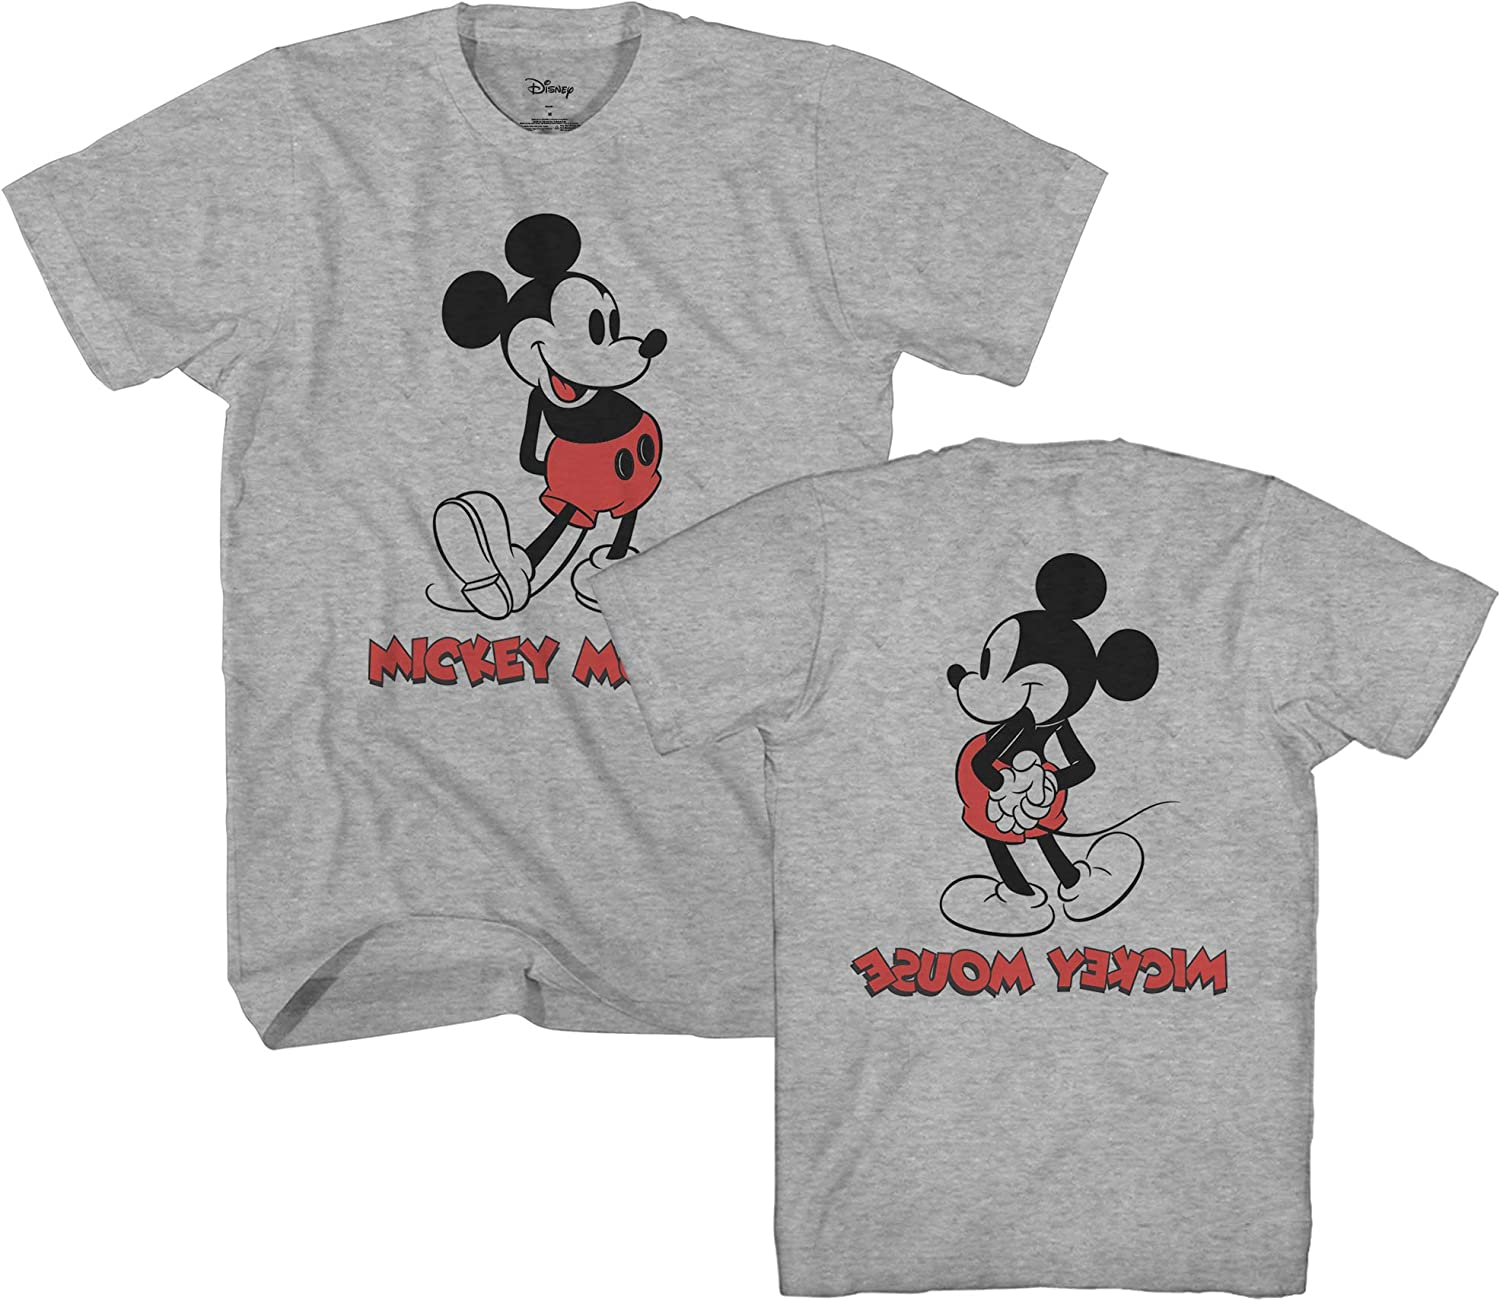 Disney Mickey Mouse Shirt Boys Expressions Classic Cartoon Character Kids Tee